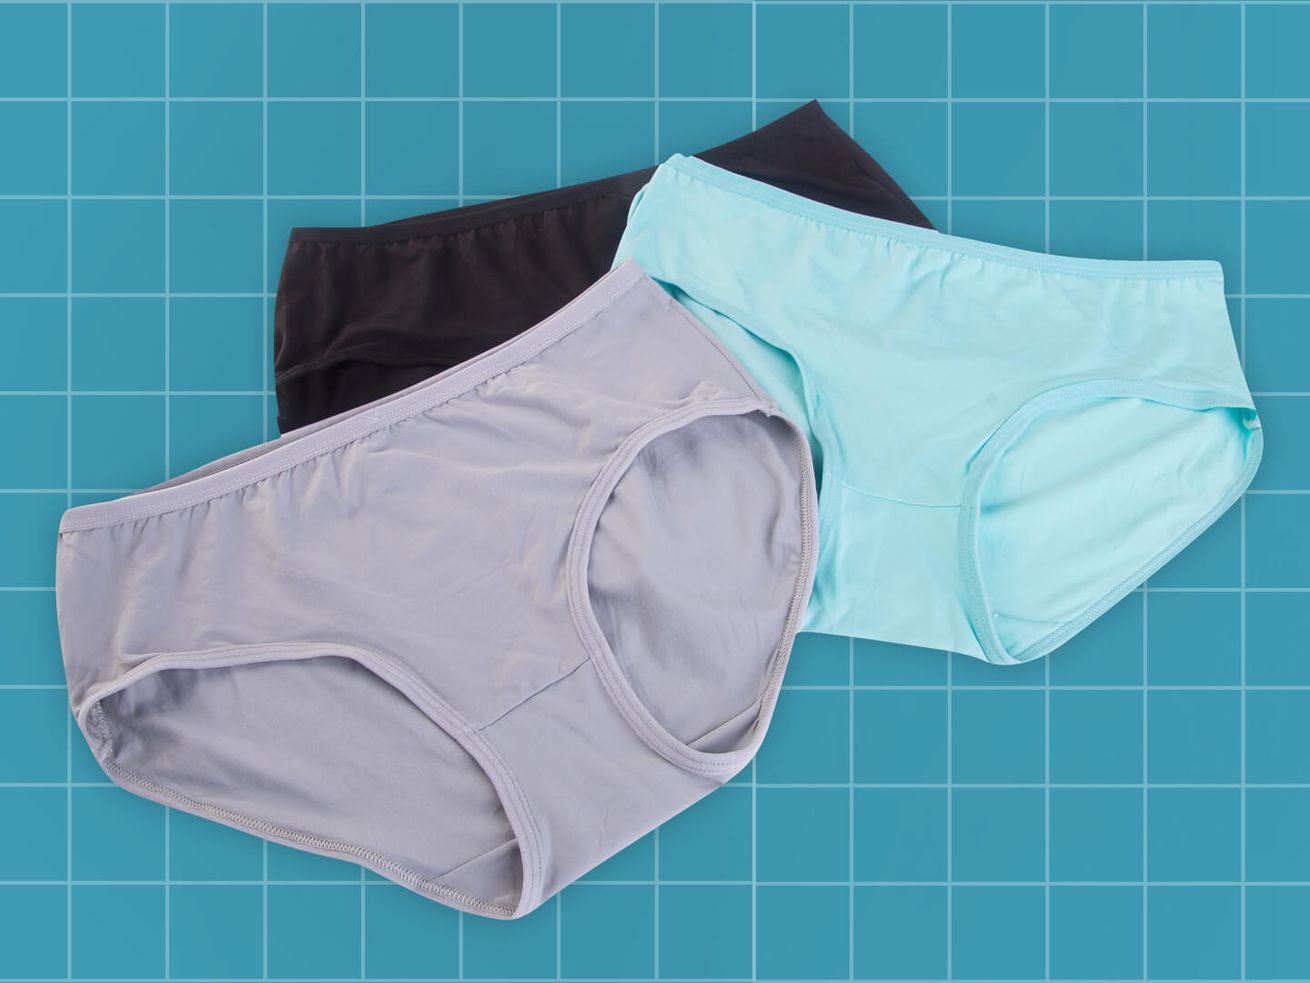 High-rise underwear has been climbing in popularity since 2014.